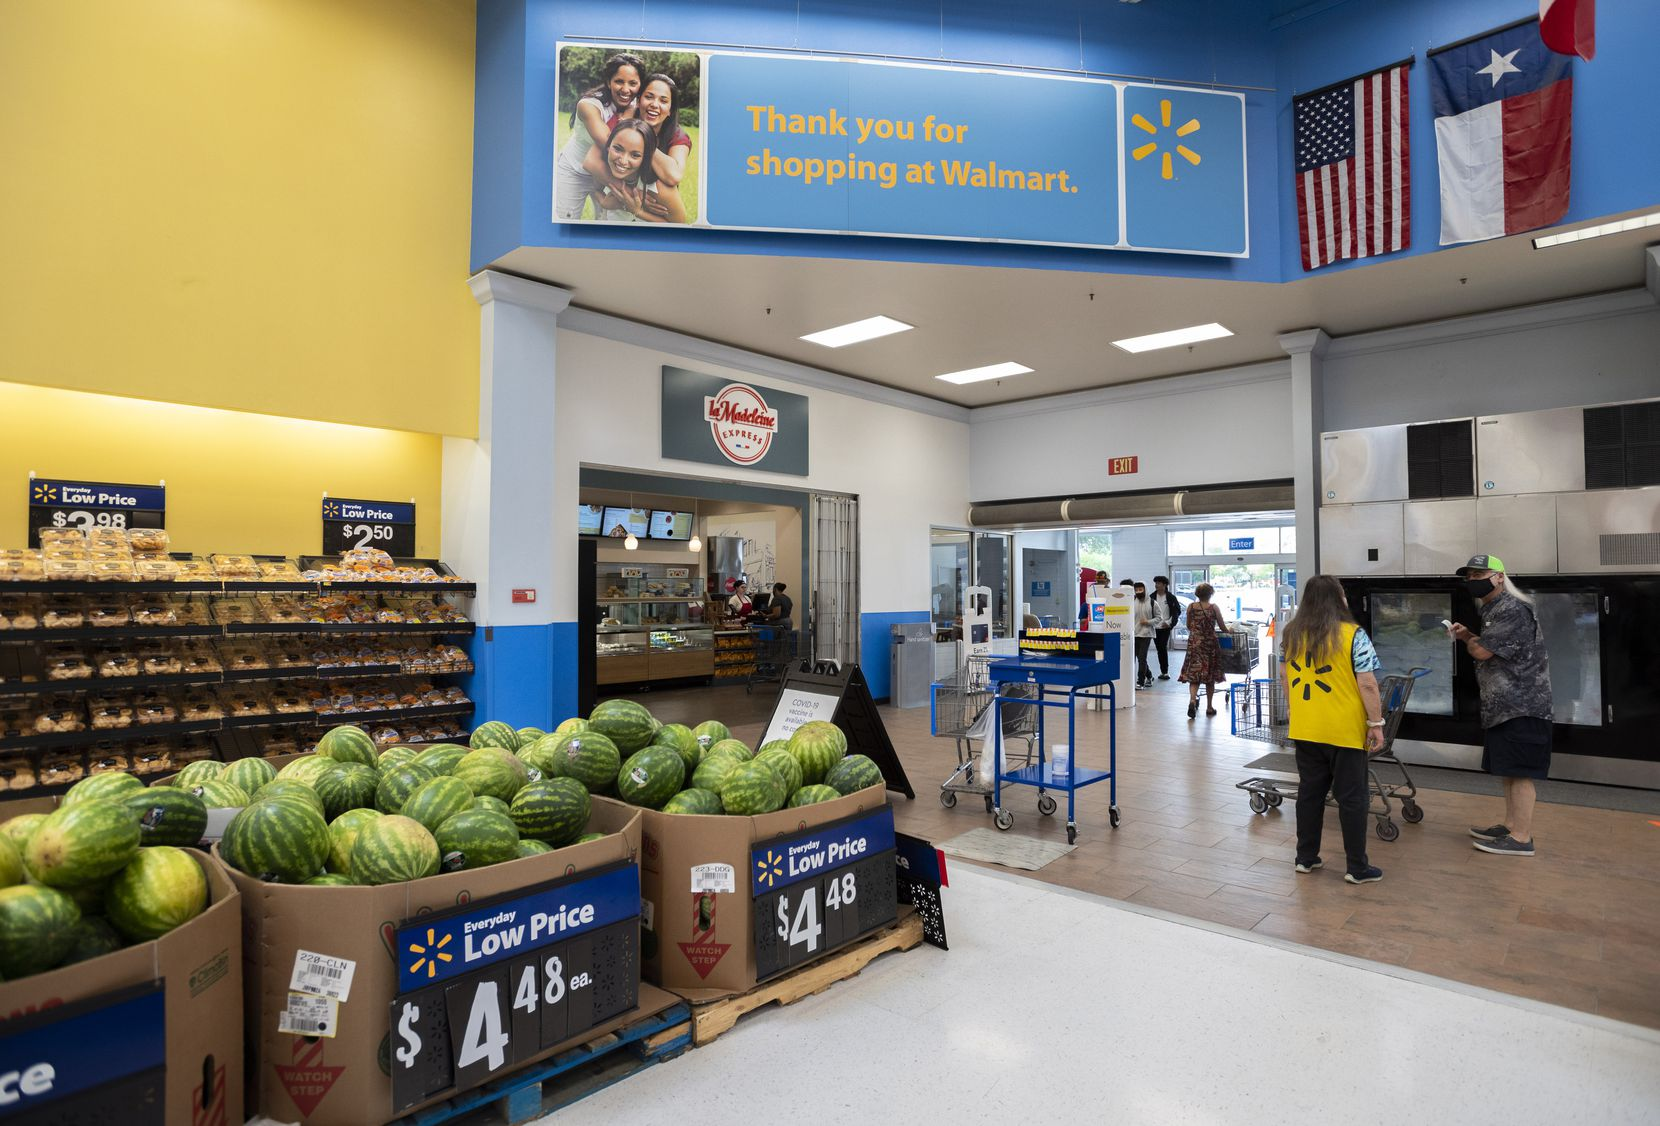 La Madeleine Express is just inside the grocery entrance of the Walmart Supercenter in Garland.